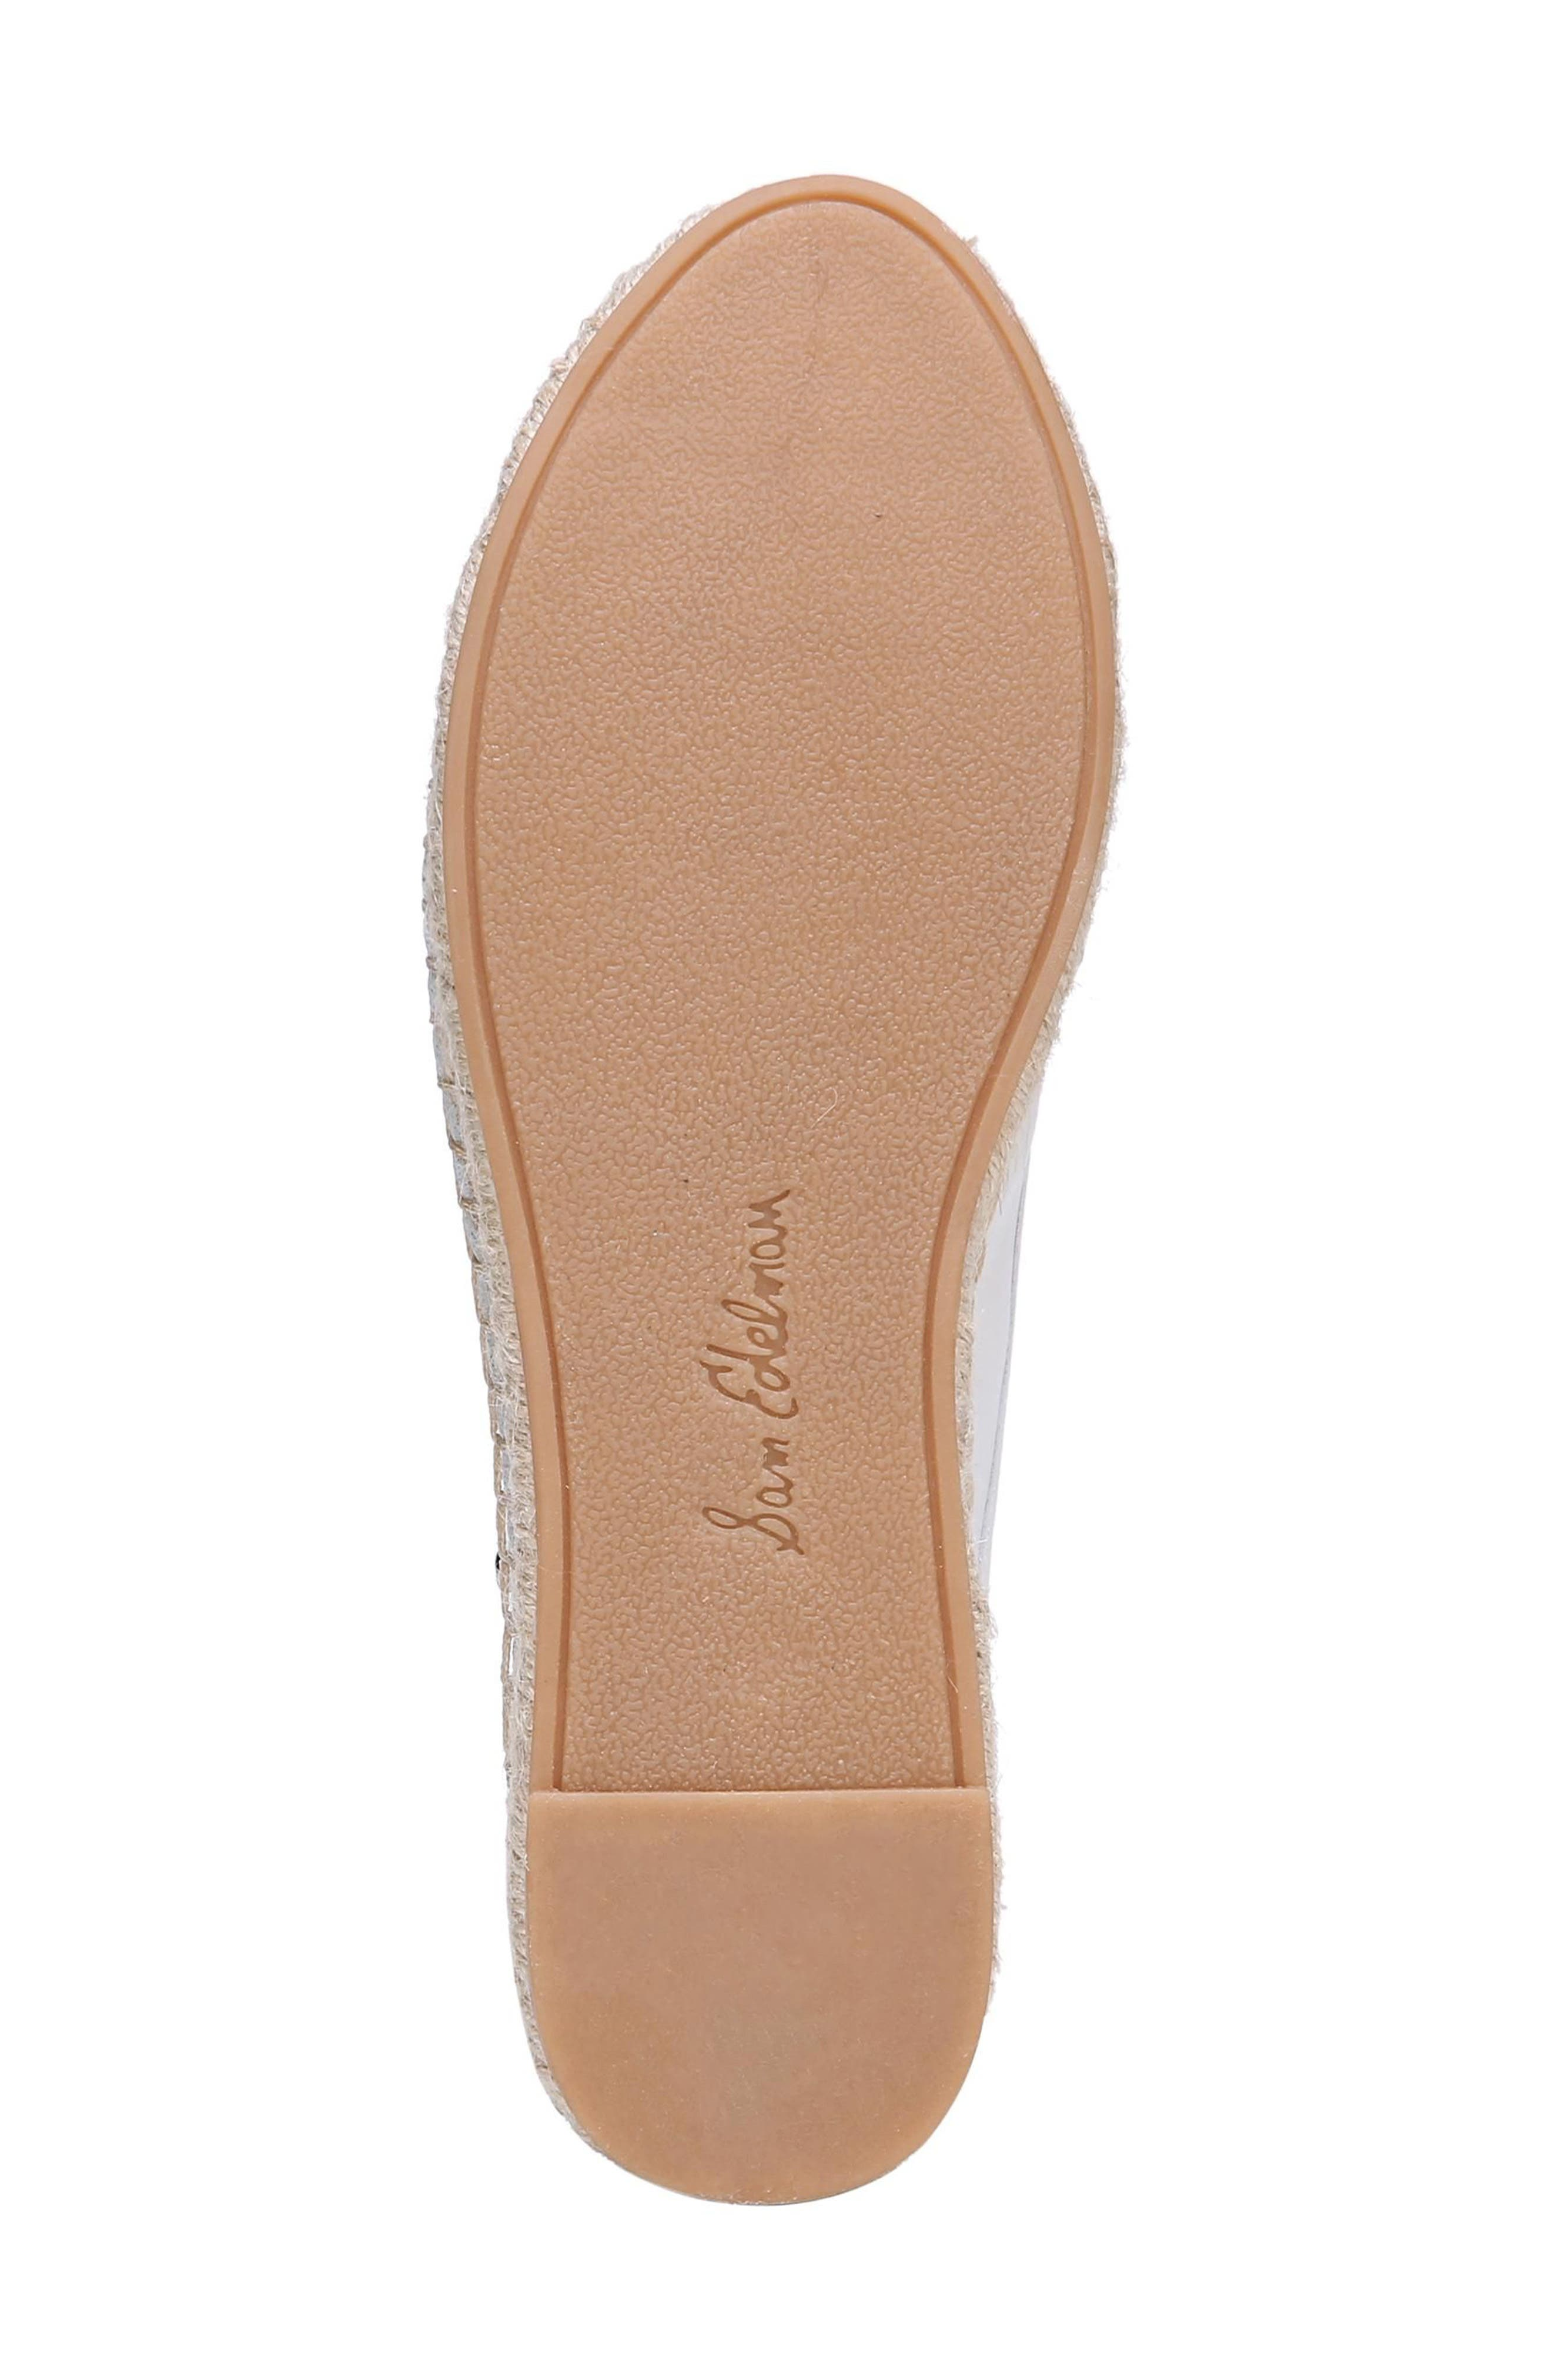 Kerry Espadrille Mule,                             Alternate thumbnail 6, color,                             Bright White Leather